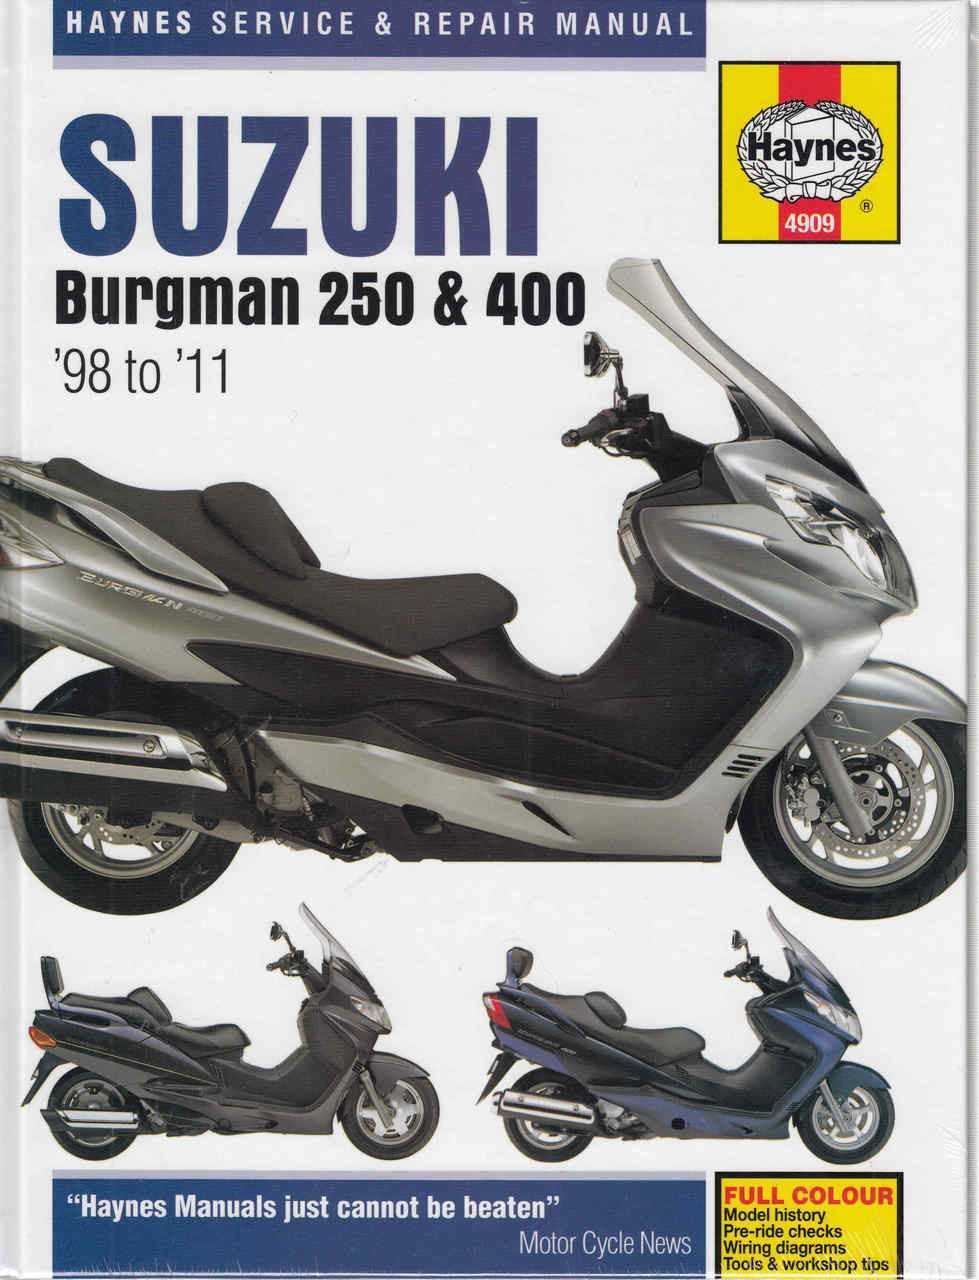 Suzuki Burgman 250 400 98 To 11 Service Repair Manual Dr250 Wiring Diagram